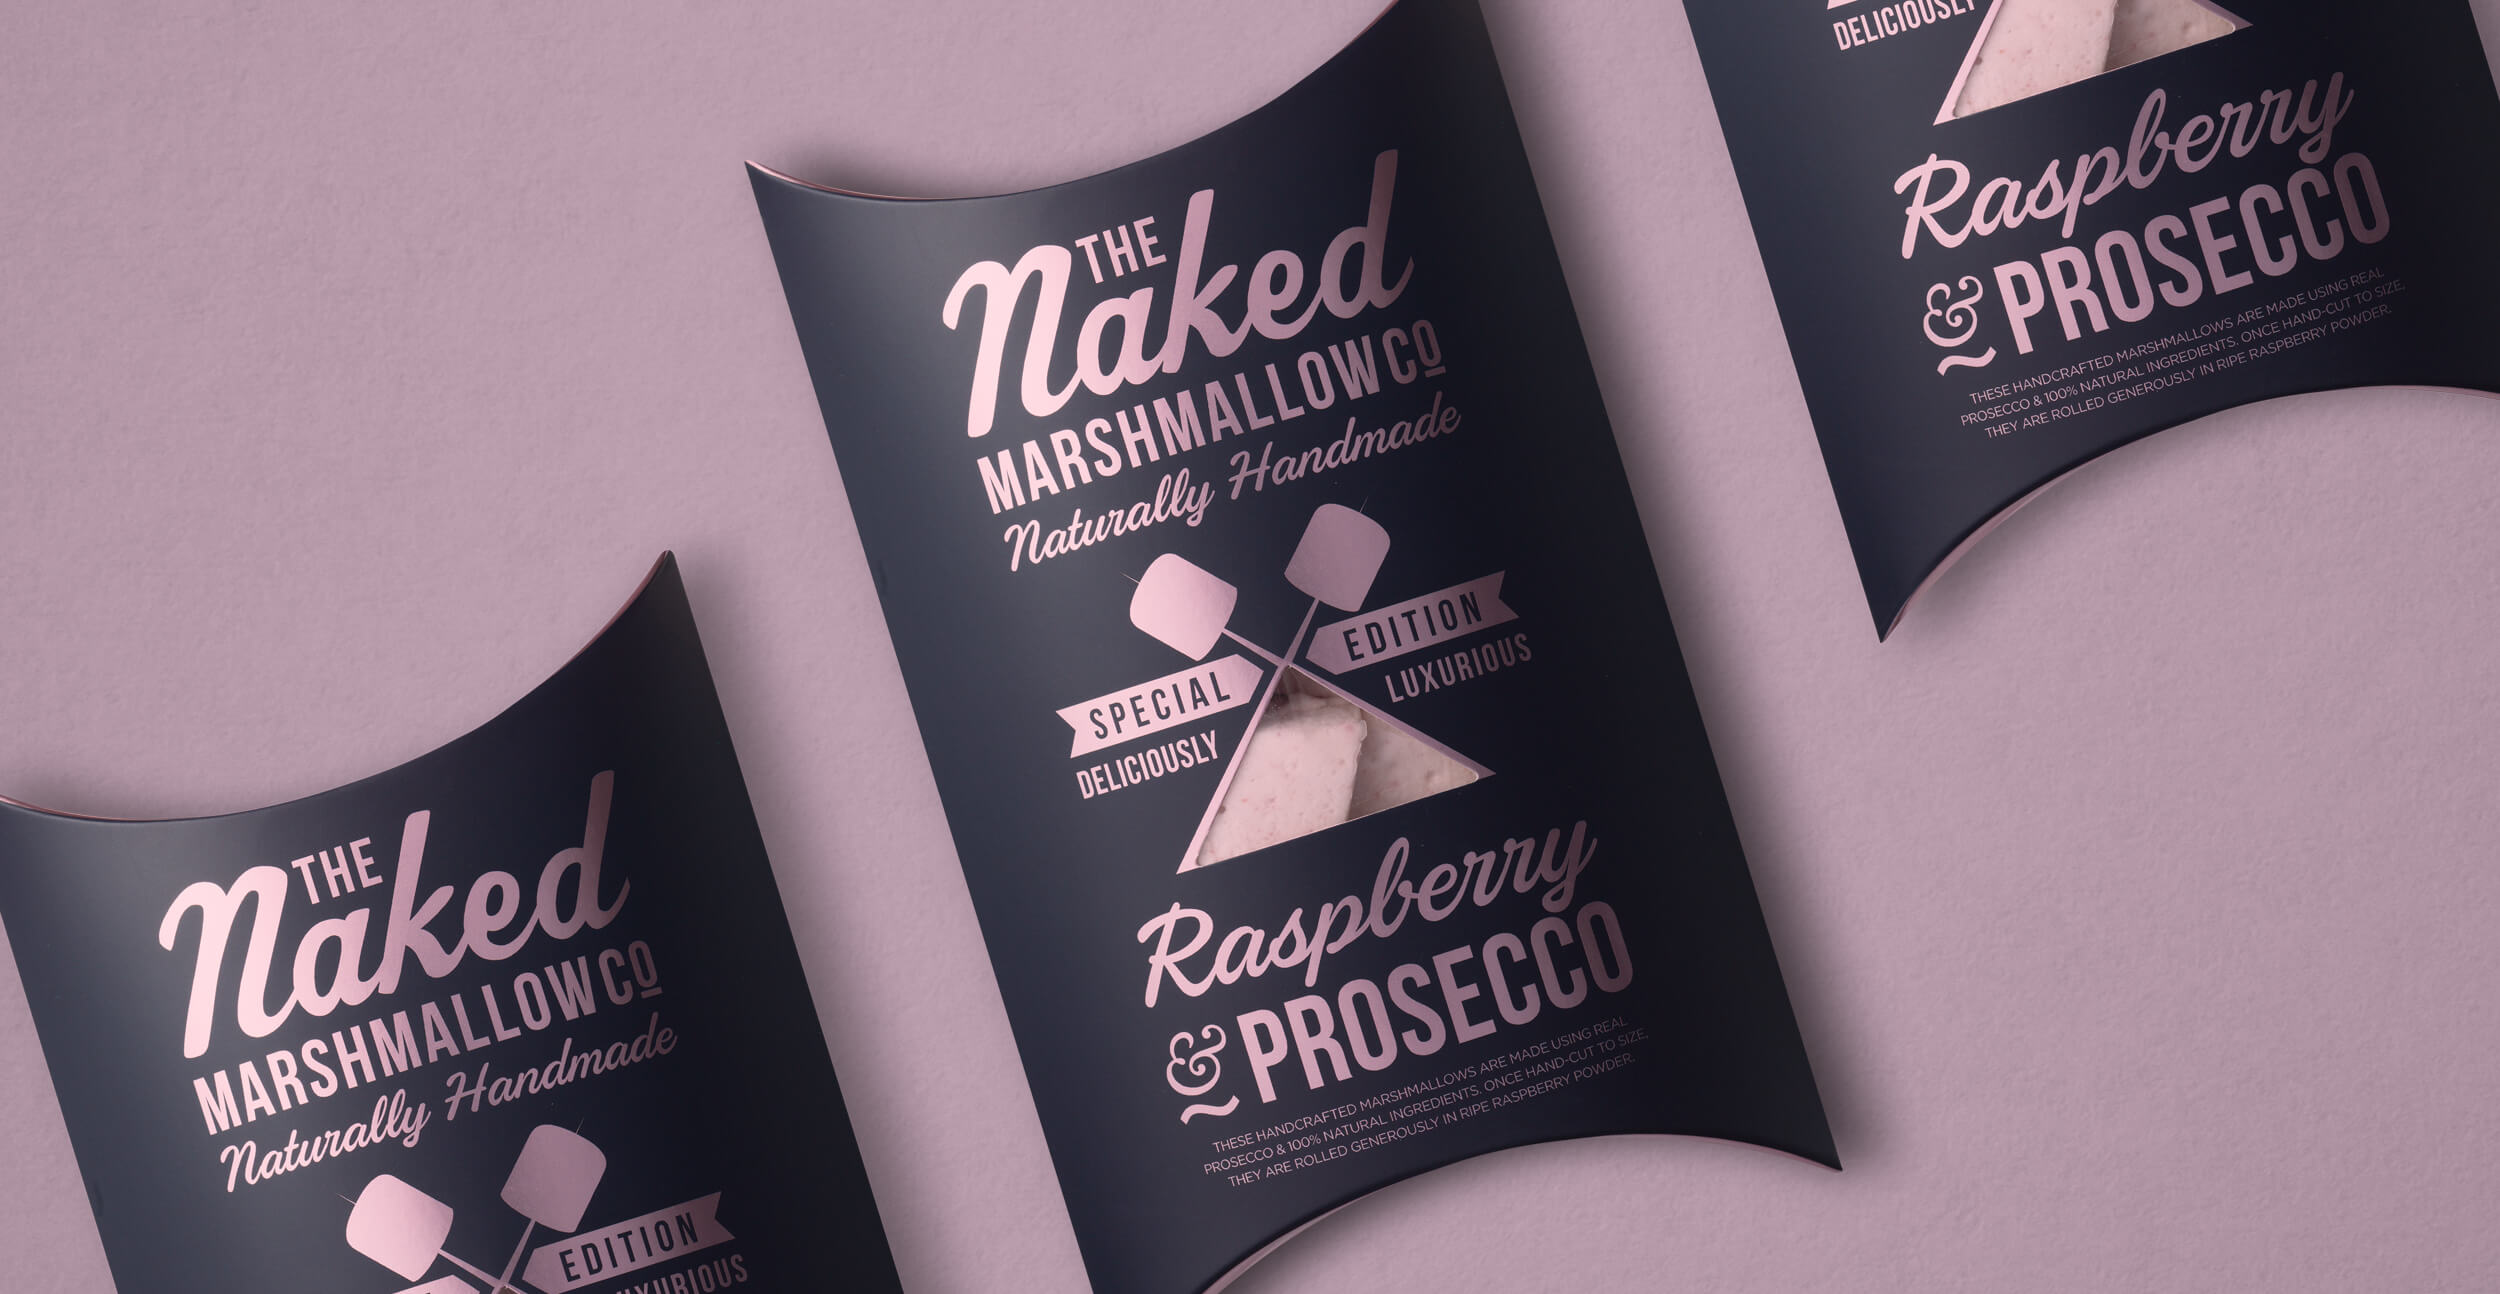 Branding and packaging design for confectionary brand The Naked Marshmallow Co by Design Happy London - Raspberry & Prosecco